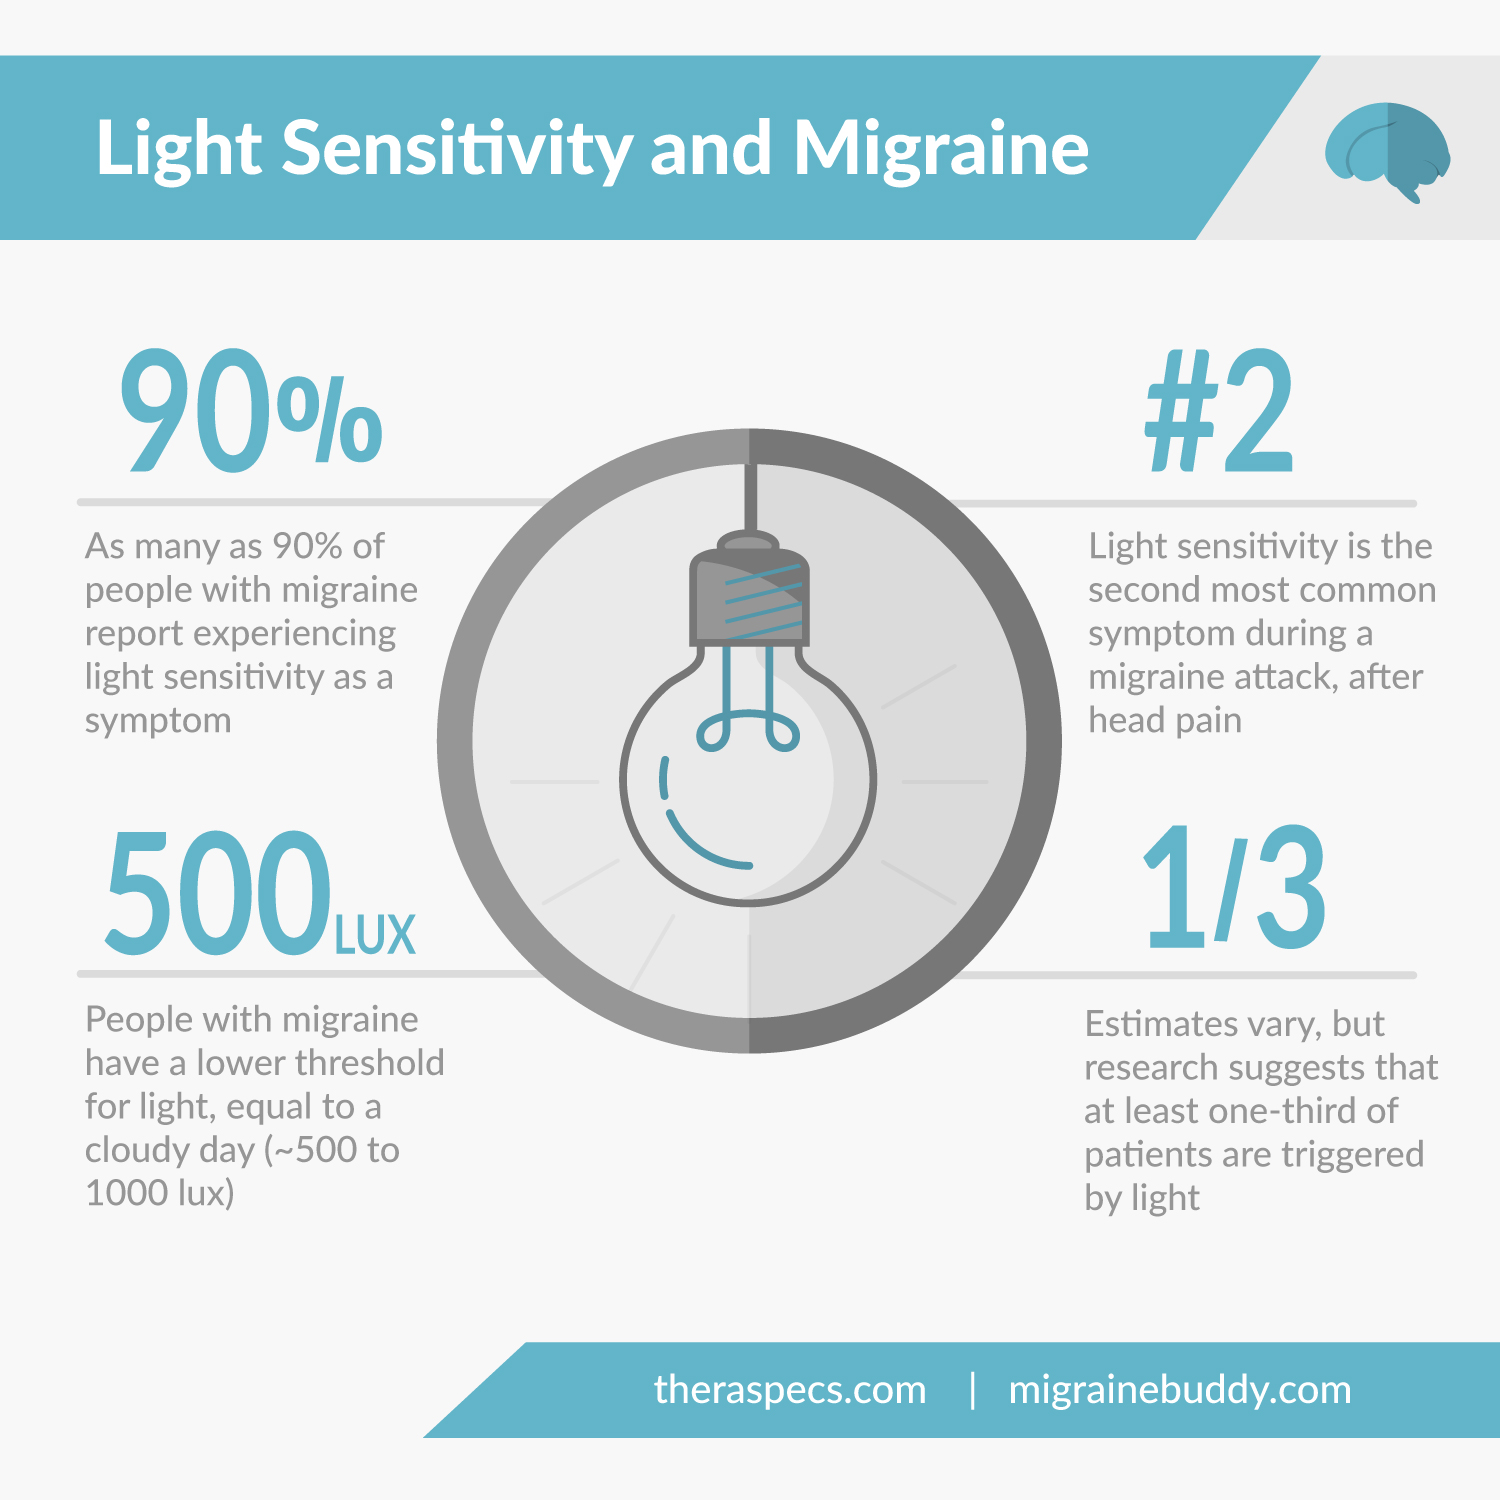 Light-Sensitivity-And-Migraine-Infographic-TheraSpecs-MigraineBuddy.jpg